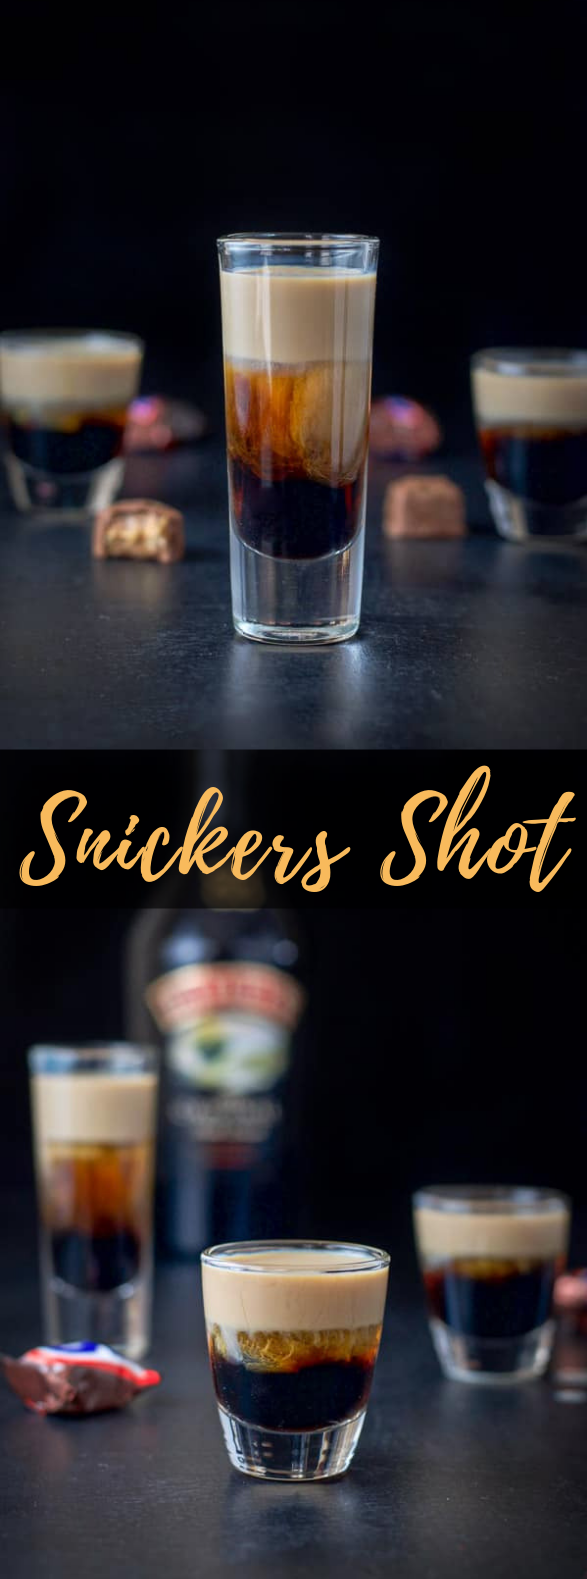 SNICKERS SHOT | STORM CLOUDS IN A GLASS #cocktails #candybar